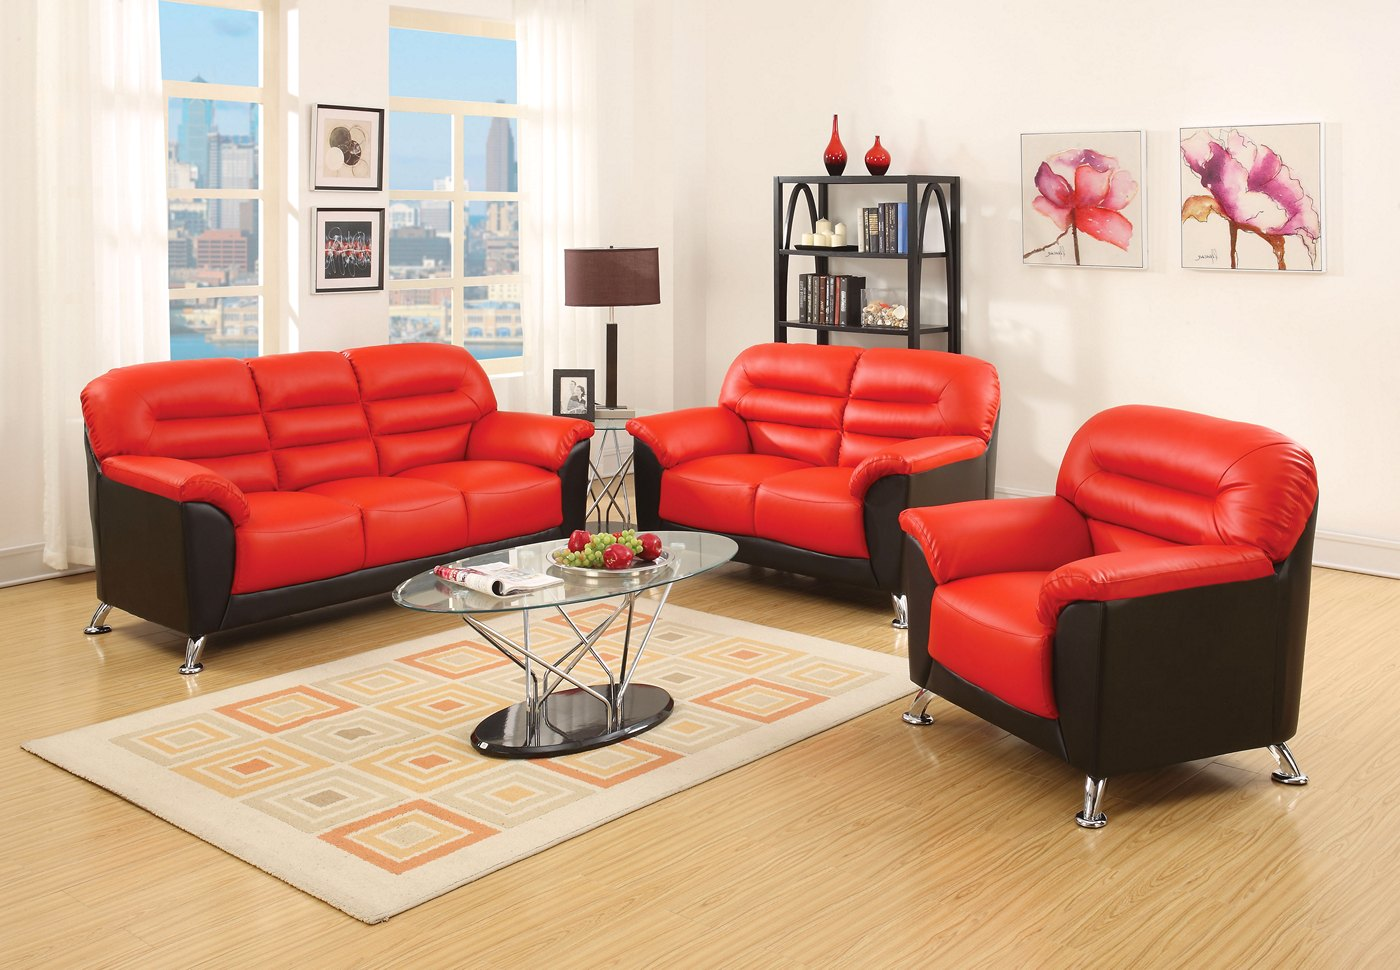 Asmund Modern Black Red Faux Leather Sofa Loveseat With Chrome Legs